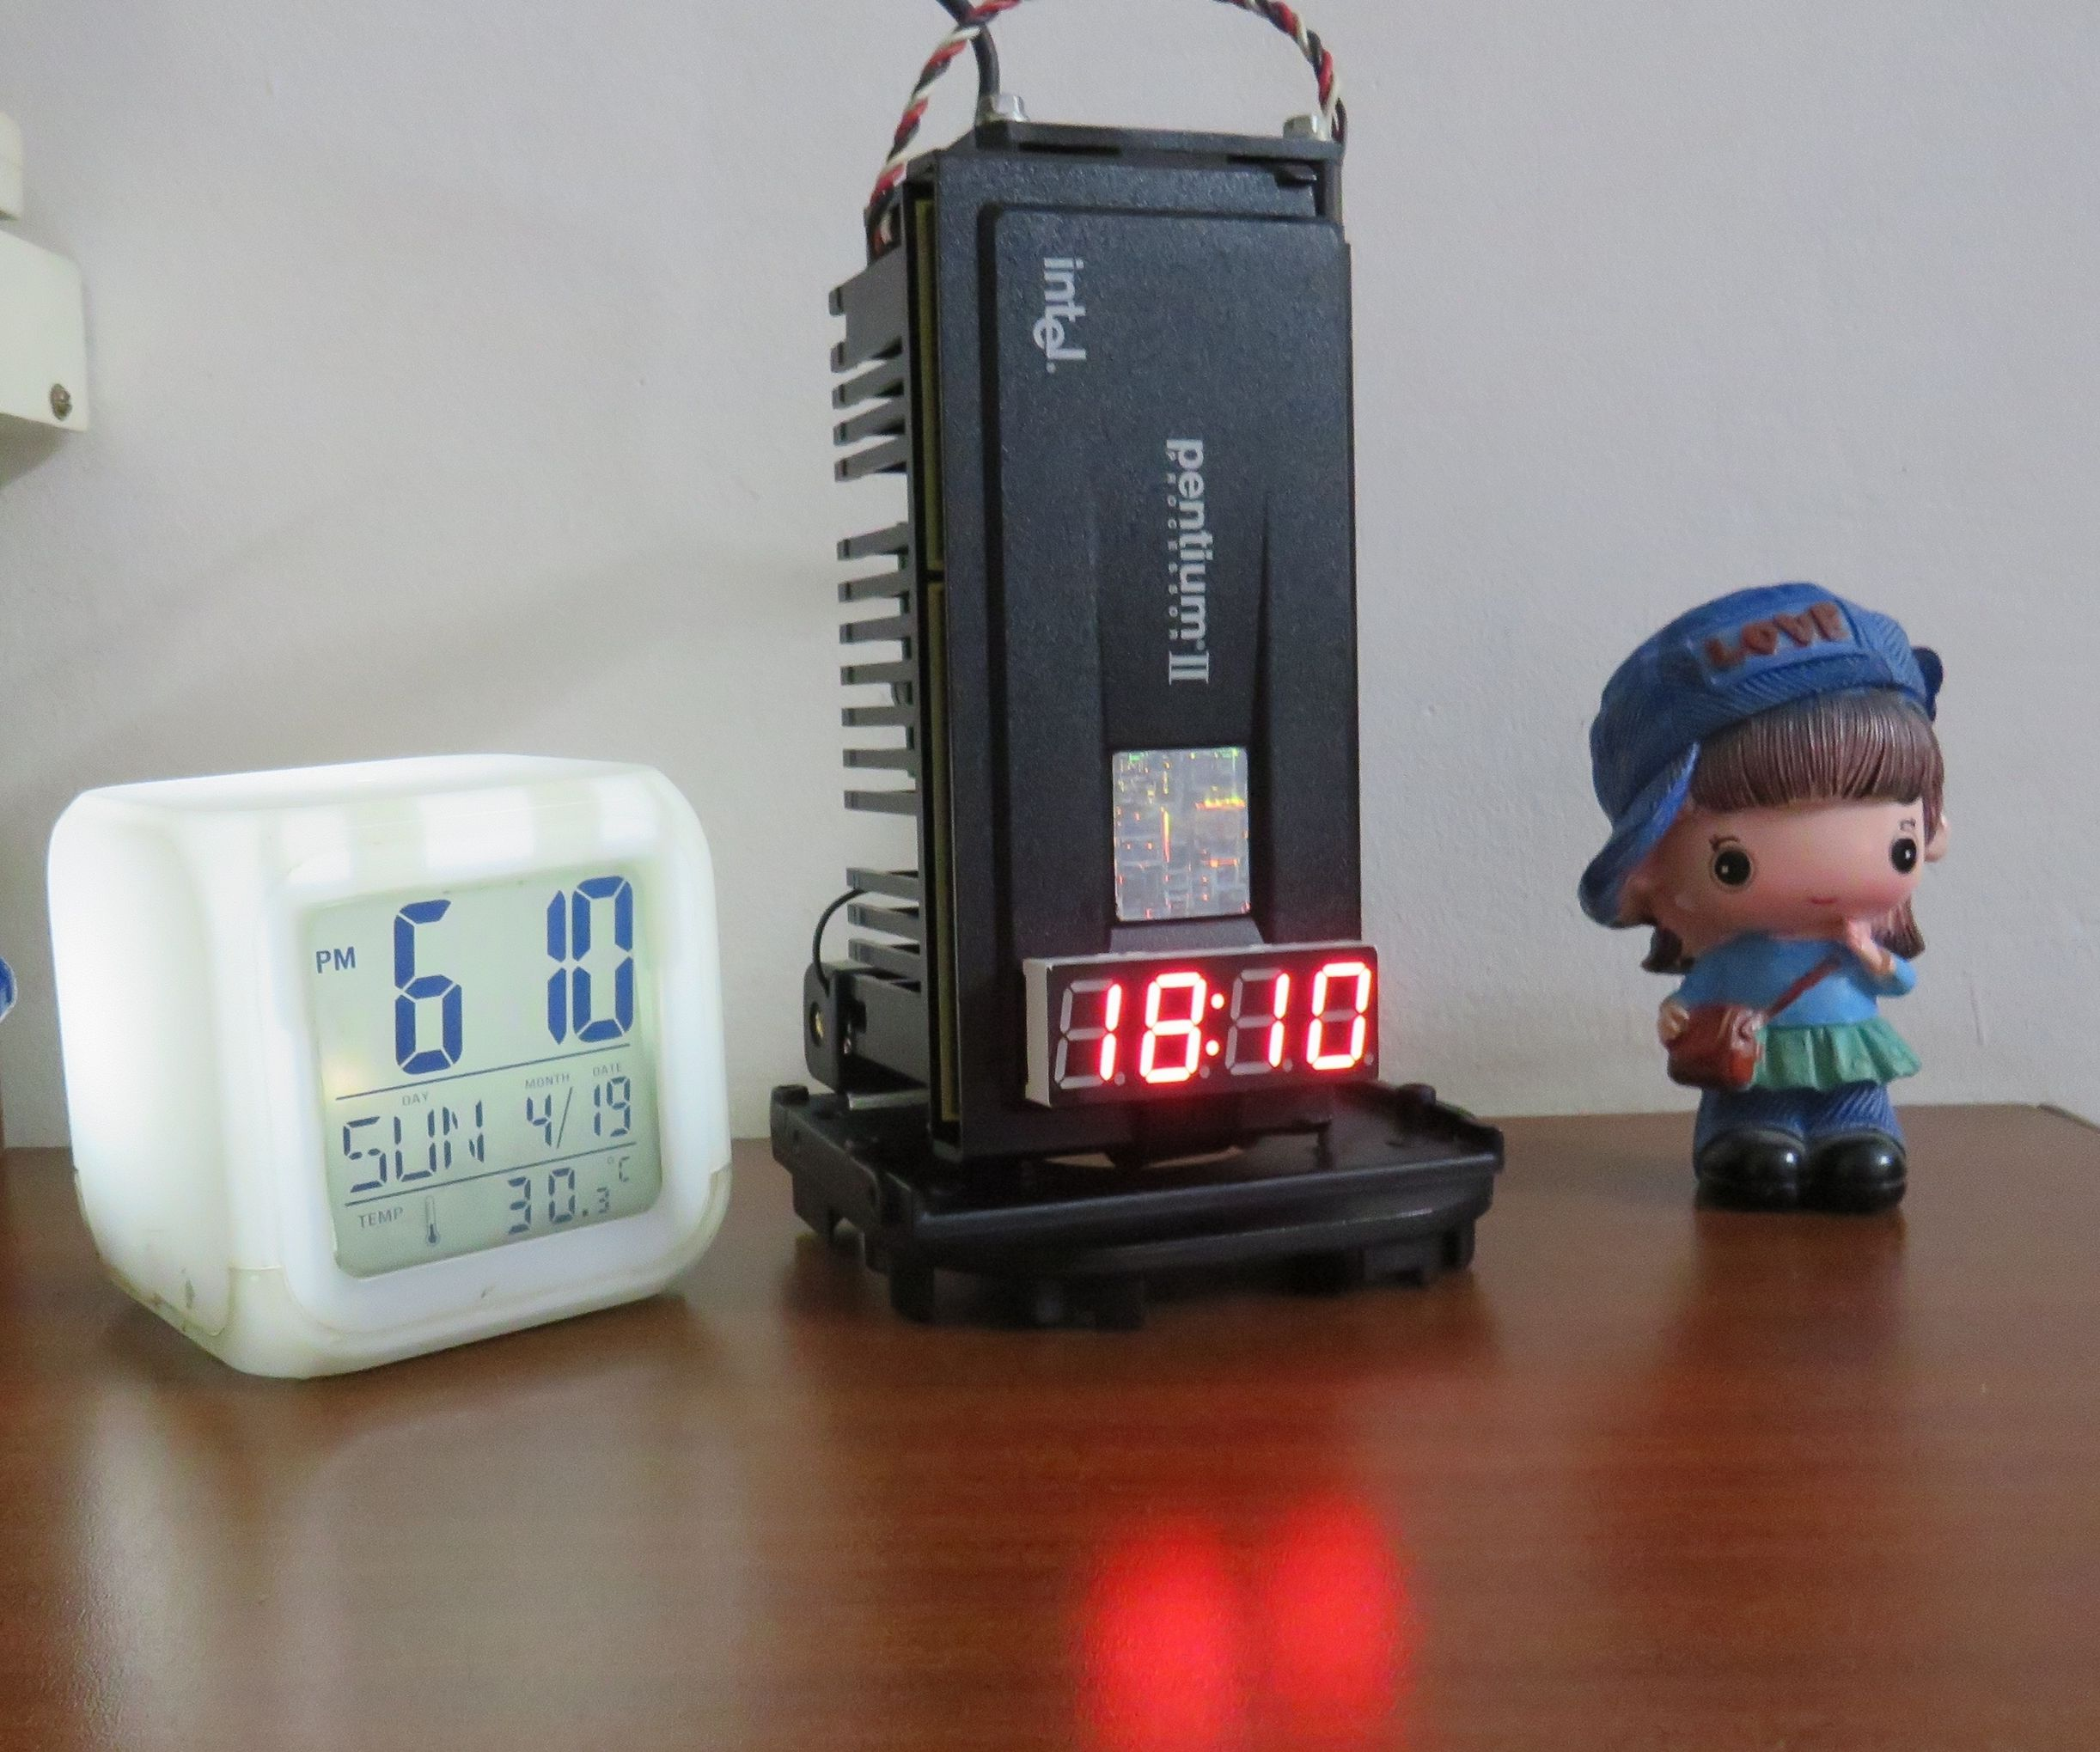 Time Bomb LED Clock Using Old Intel Pentium II Processor